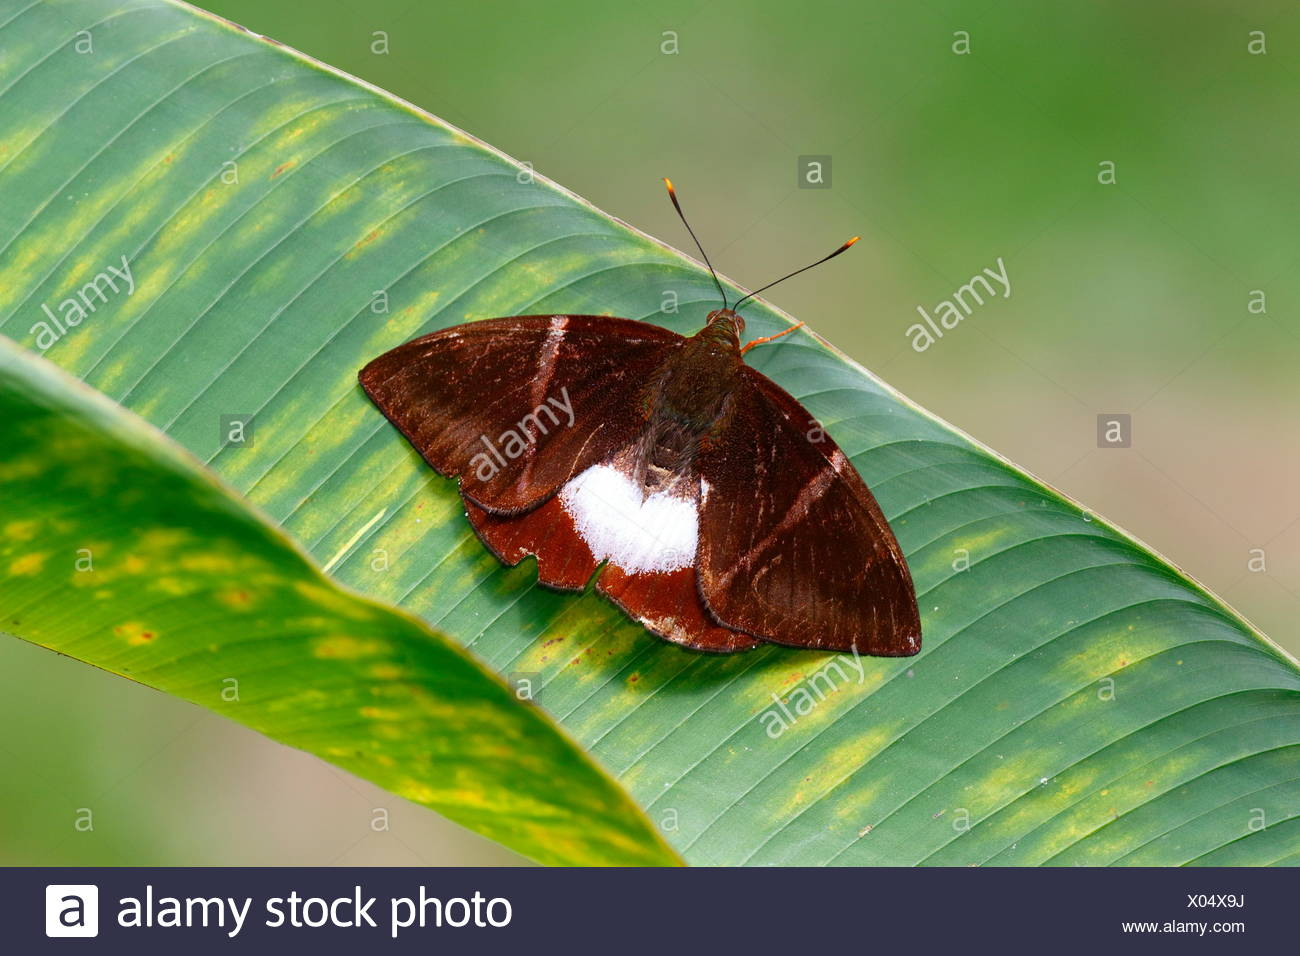 A Giant Butterfly-moth, Castniomera atymnius, basking on a leaf. - Stock Image